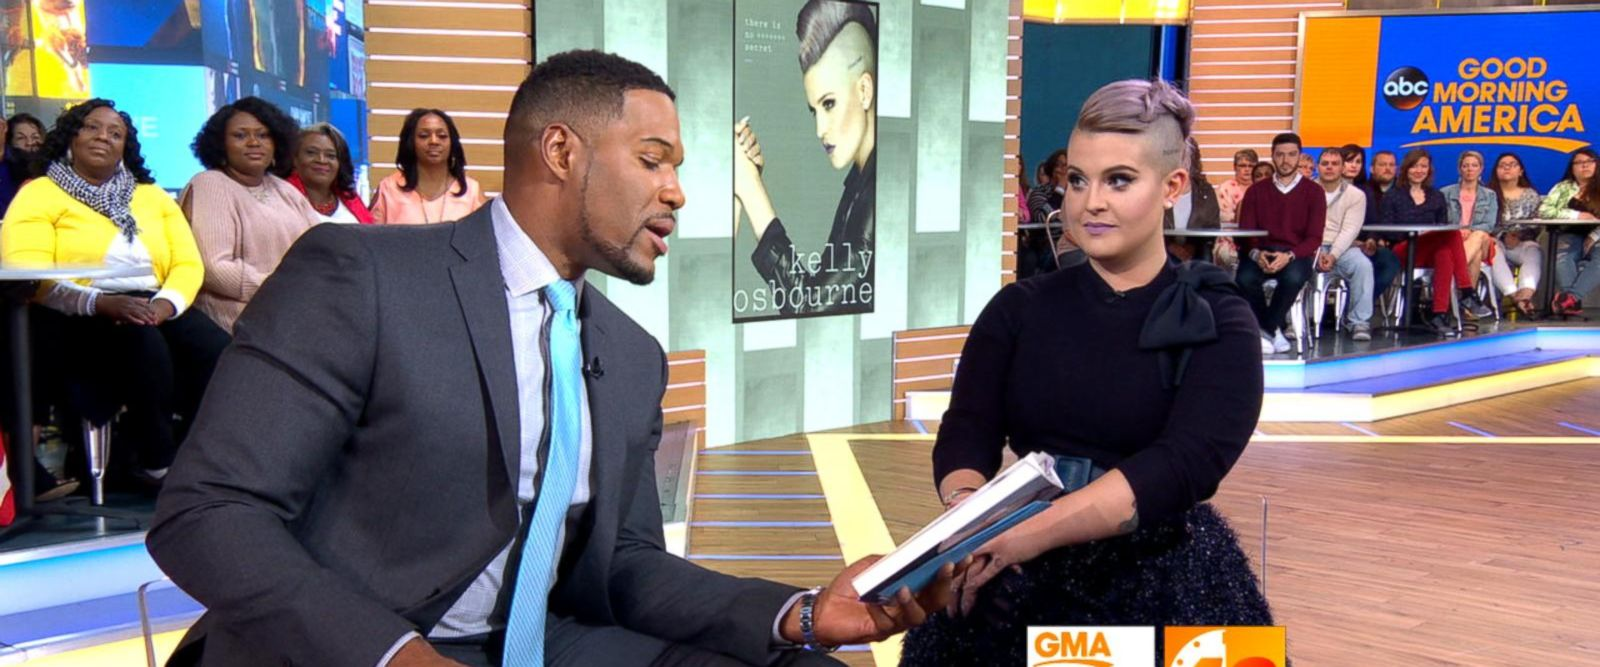 VIDEO: 'GMA' Hot List: Kelly Osbourne reveals her mother's celebrity crush